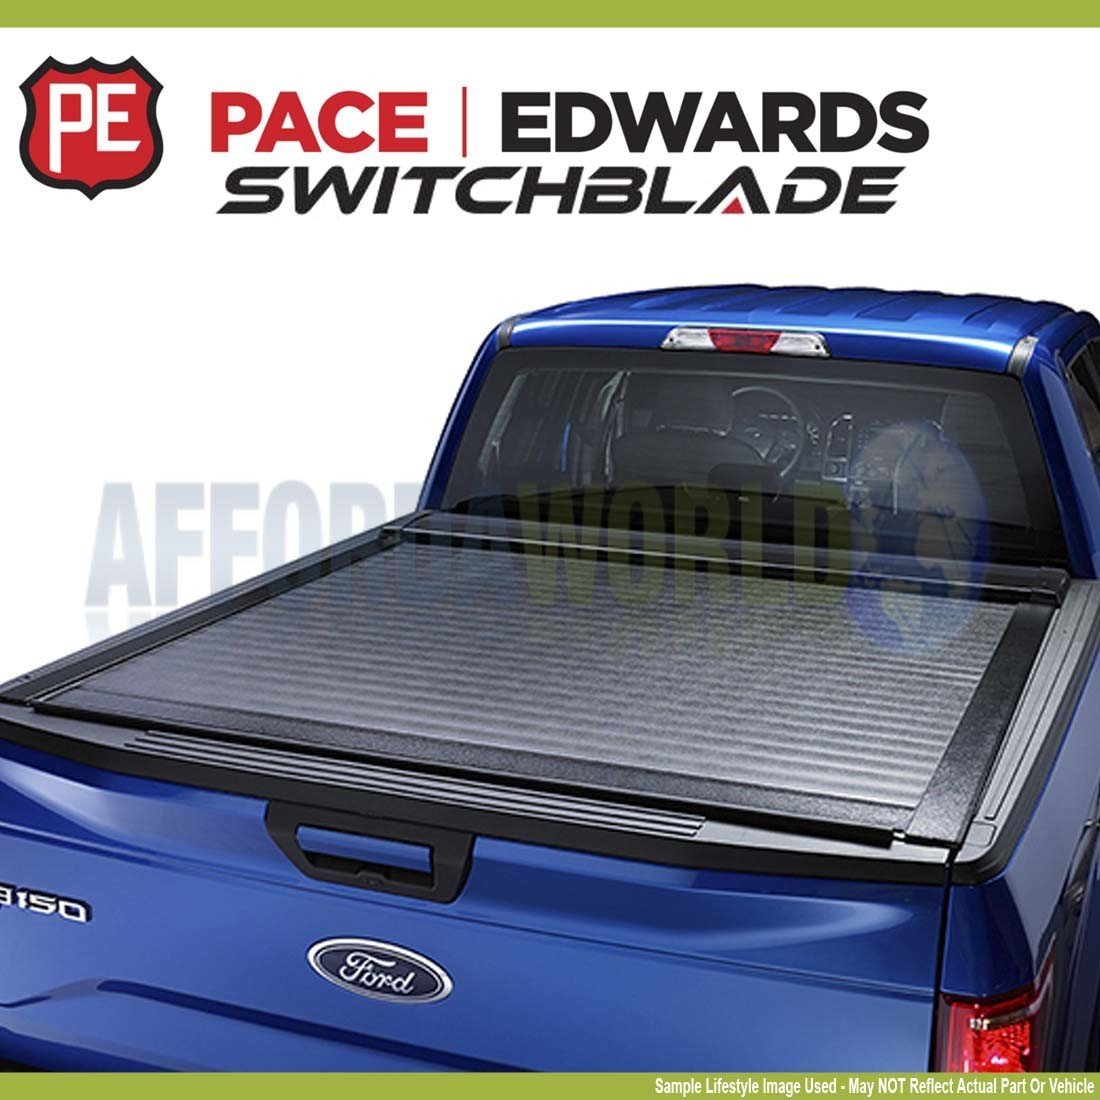 Pace Edwards Switchblade